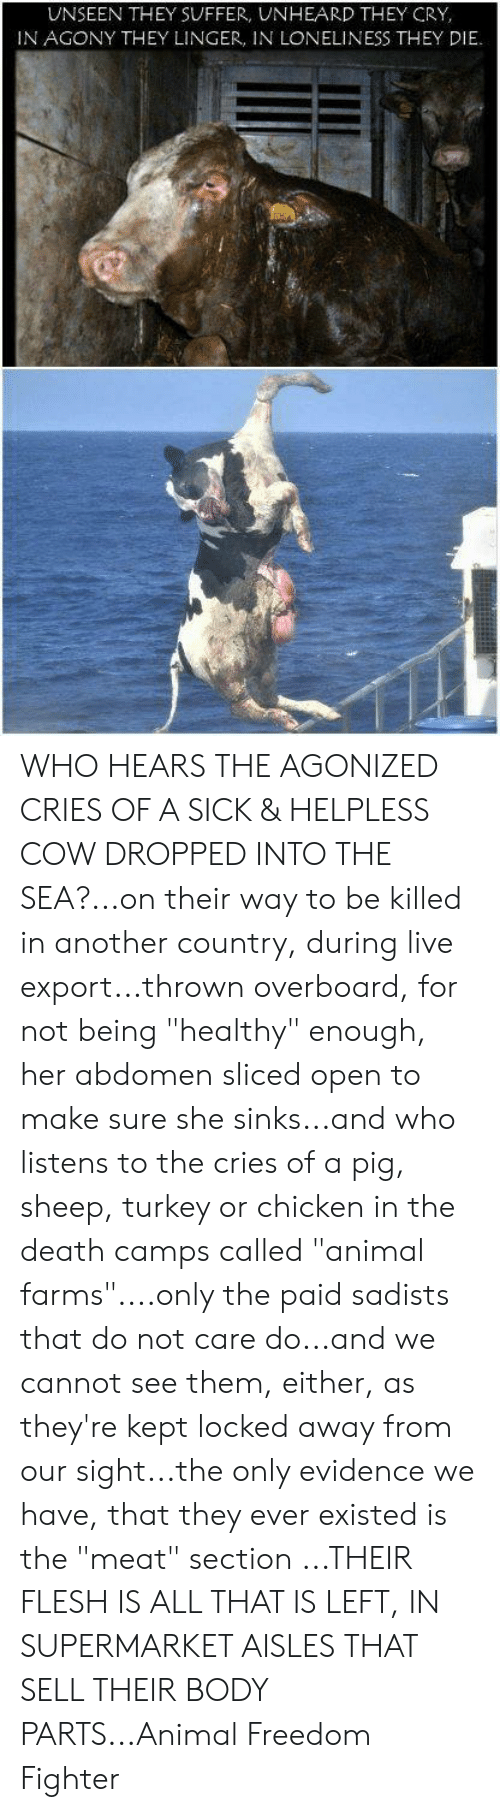 """Memes, Animal, and Chicken: UNSEEN THEY SUFFER, UNHEARD THEY CRY,  IN AGONY THEY LINGER, IN LONELINESS THEY DIE WHO HEARS THE AGONIZED CRIES OF A SICK & HELPLESS COW DROPPED INTO THE SEA?...on their way to be killed in another country, during live export...thrown overboard, for not being """"healthy"""" enough, her abdomen sliced open to make sure she sinks...and who listens to the cries of a pig, sheep, turkey or chicken in the death camps called """"animal farms""""....only the paid sadists that do not care do...and we cannot see them, either, as they're kept locked away from our sight...the only evidence we have, that they ever existed is the """"meat"""" section ...THEIR FLESH IS ALL THAT IS LEFT, IN SUPERMARKET AISLES THAT SELL THEIR BODY PARTS...Animal Freedom Fighter"""